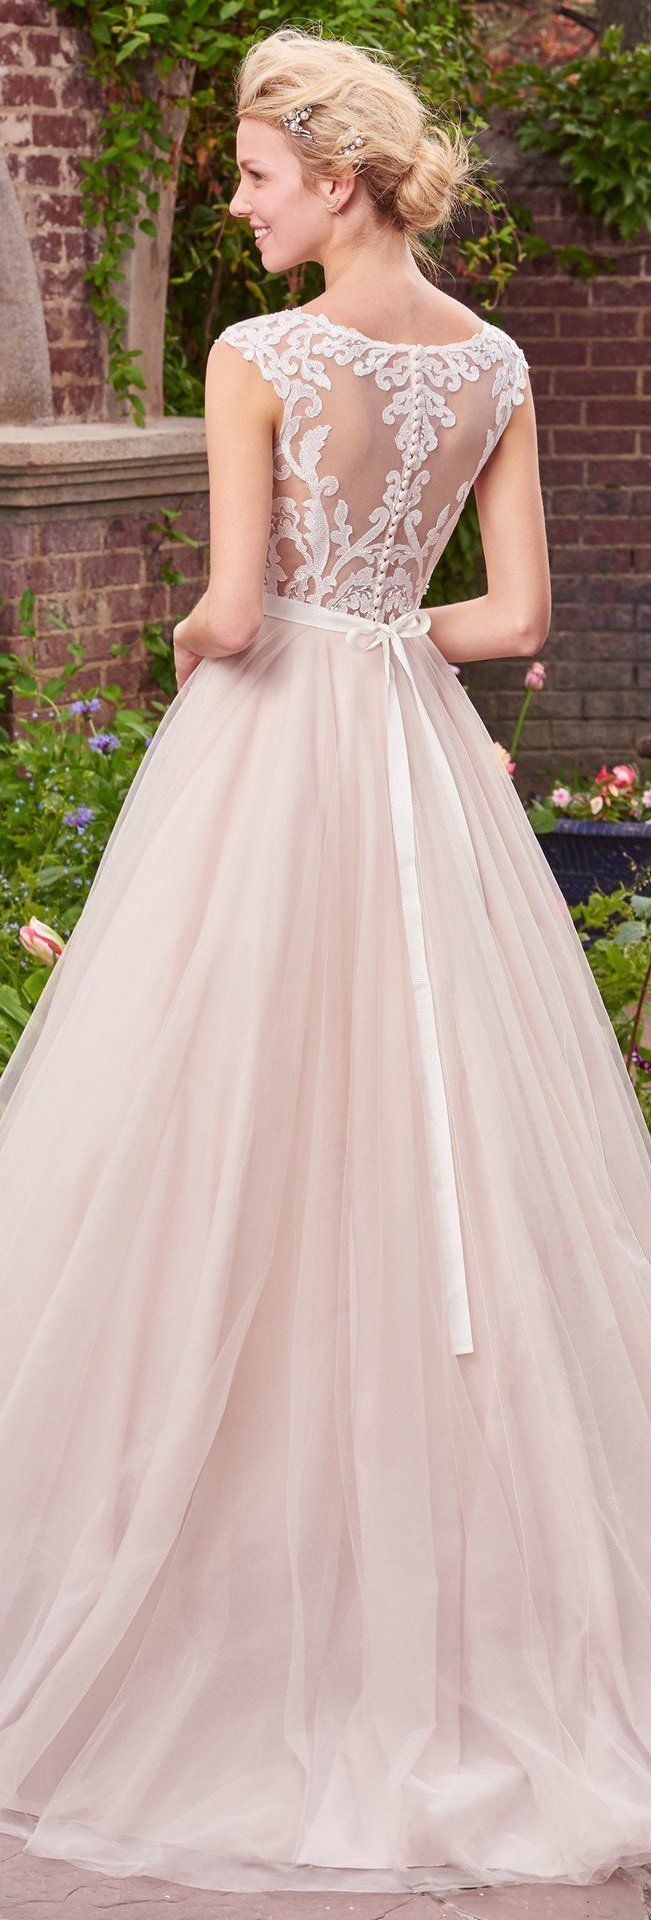 Maggie Sottero Wedding Dresses Carrie Dress And Weddings